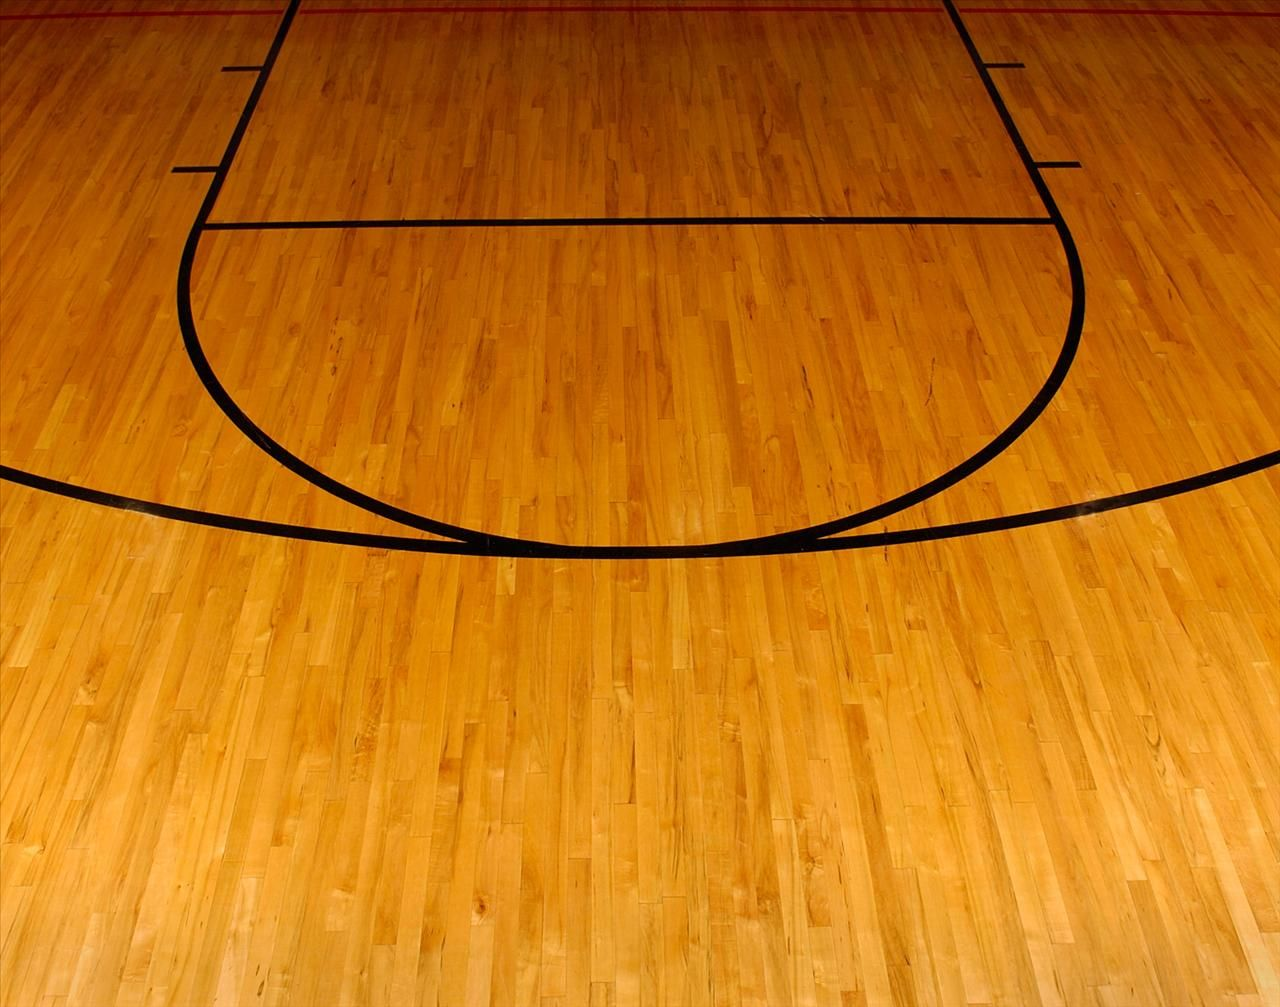 Basketball court wallpaper hd wallpapers pinterest for How wide is a basketball court